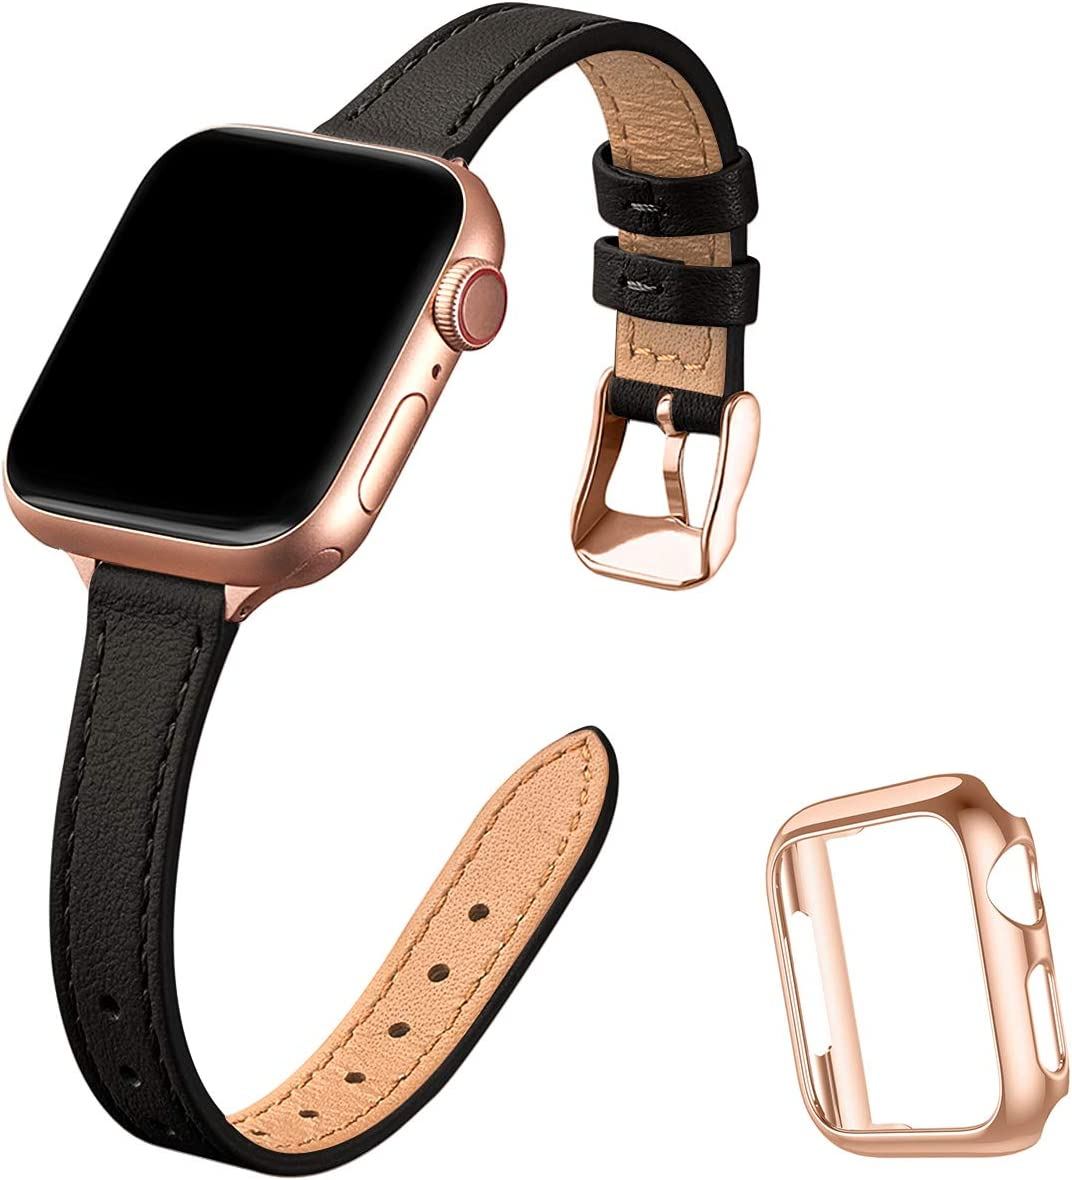 STIROLL Slim Leather Bands Compatible with Apple Watch Band 38mm 40mm 42mm 44mm, Top Grain Leather Watch Thin Wristband for iWatch SE Series 6/5/4/3/2/1 (Black with Rose Gold, 38mm/40mm)